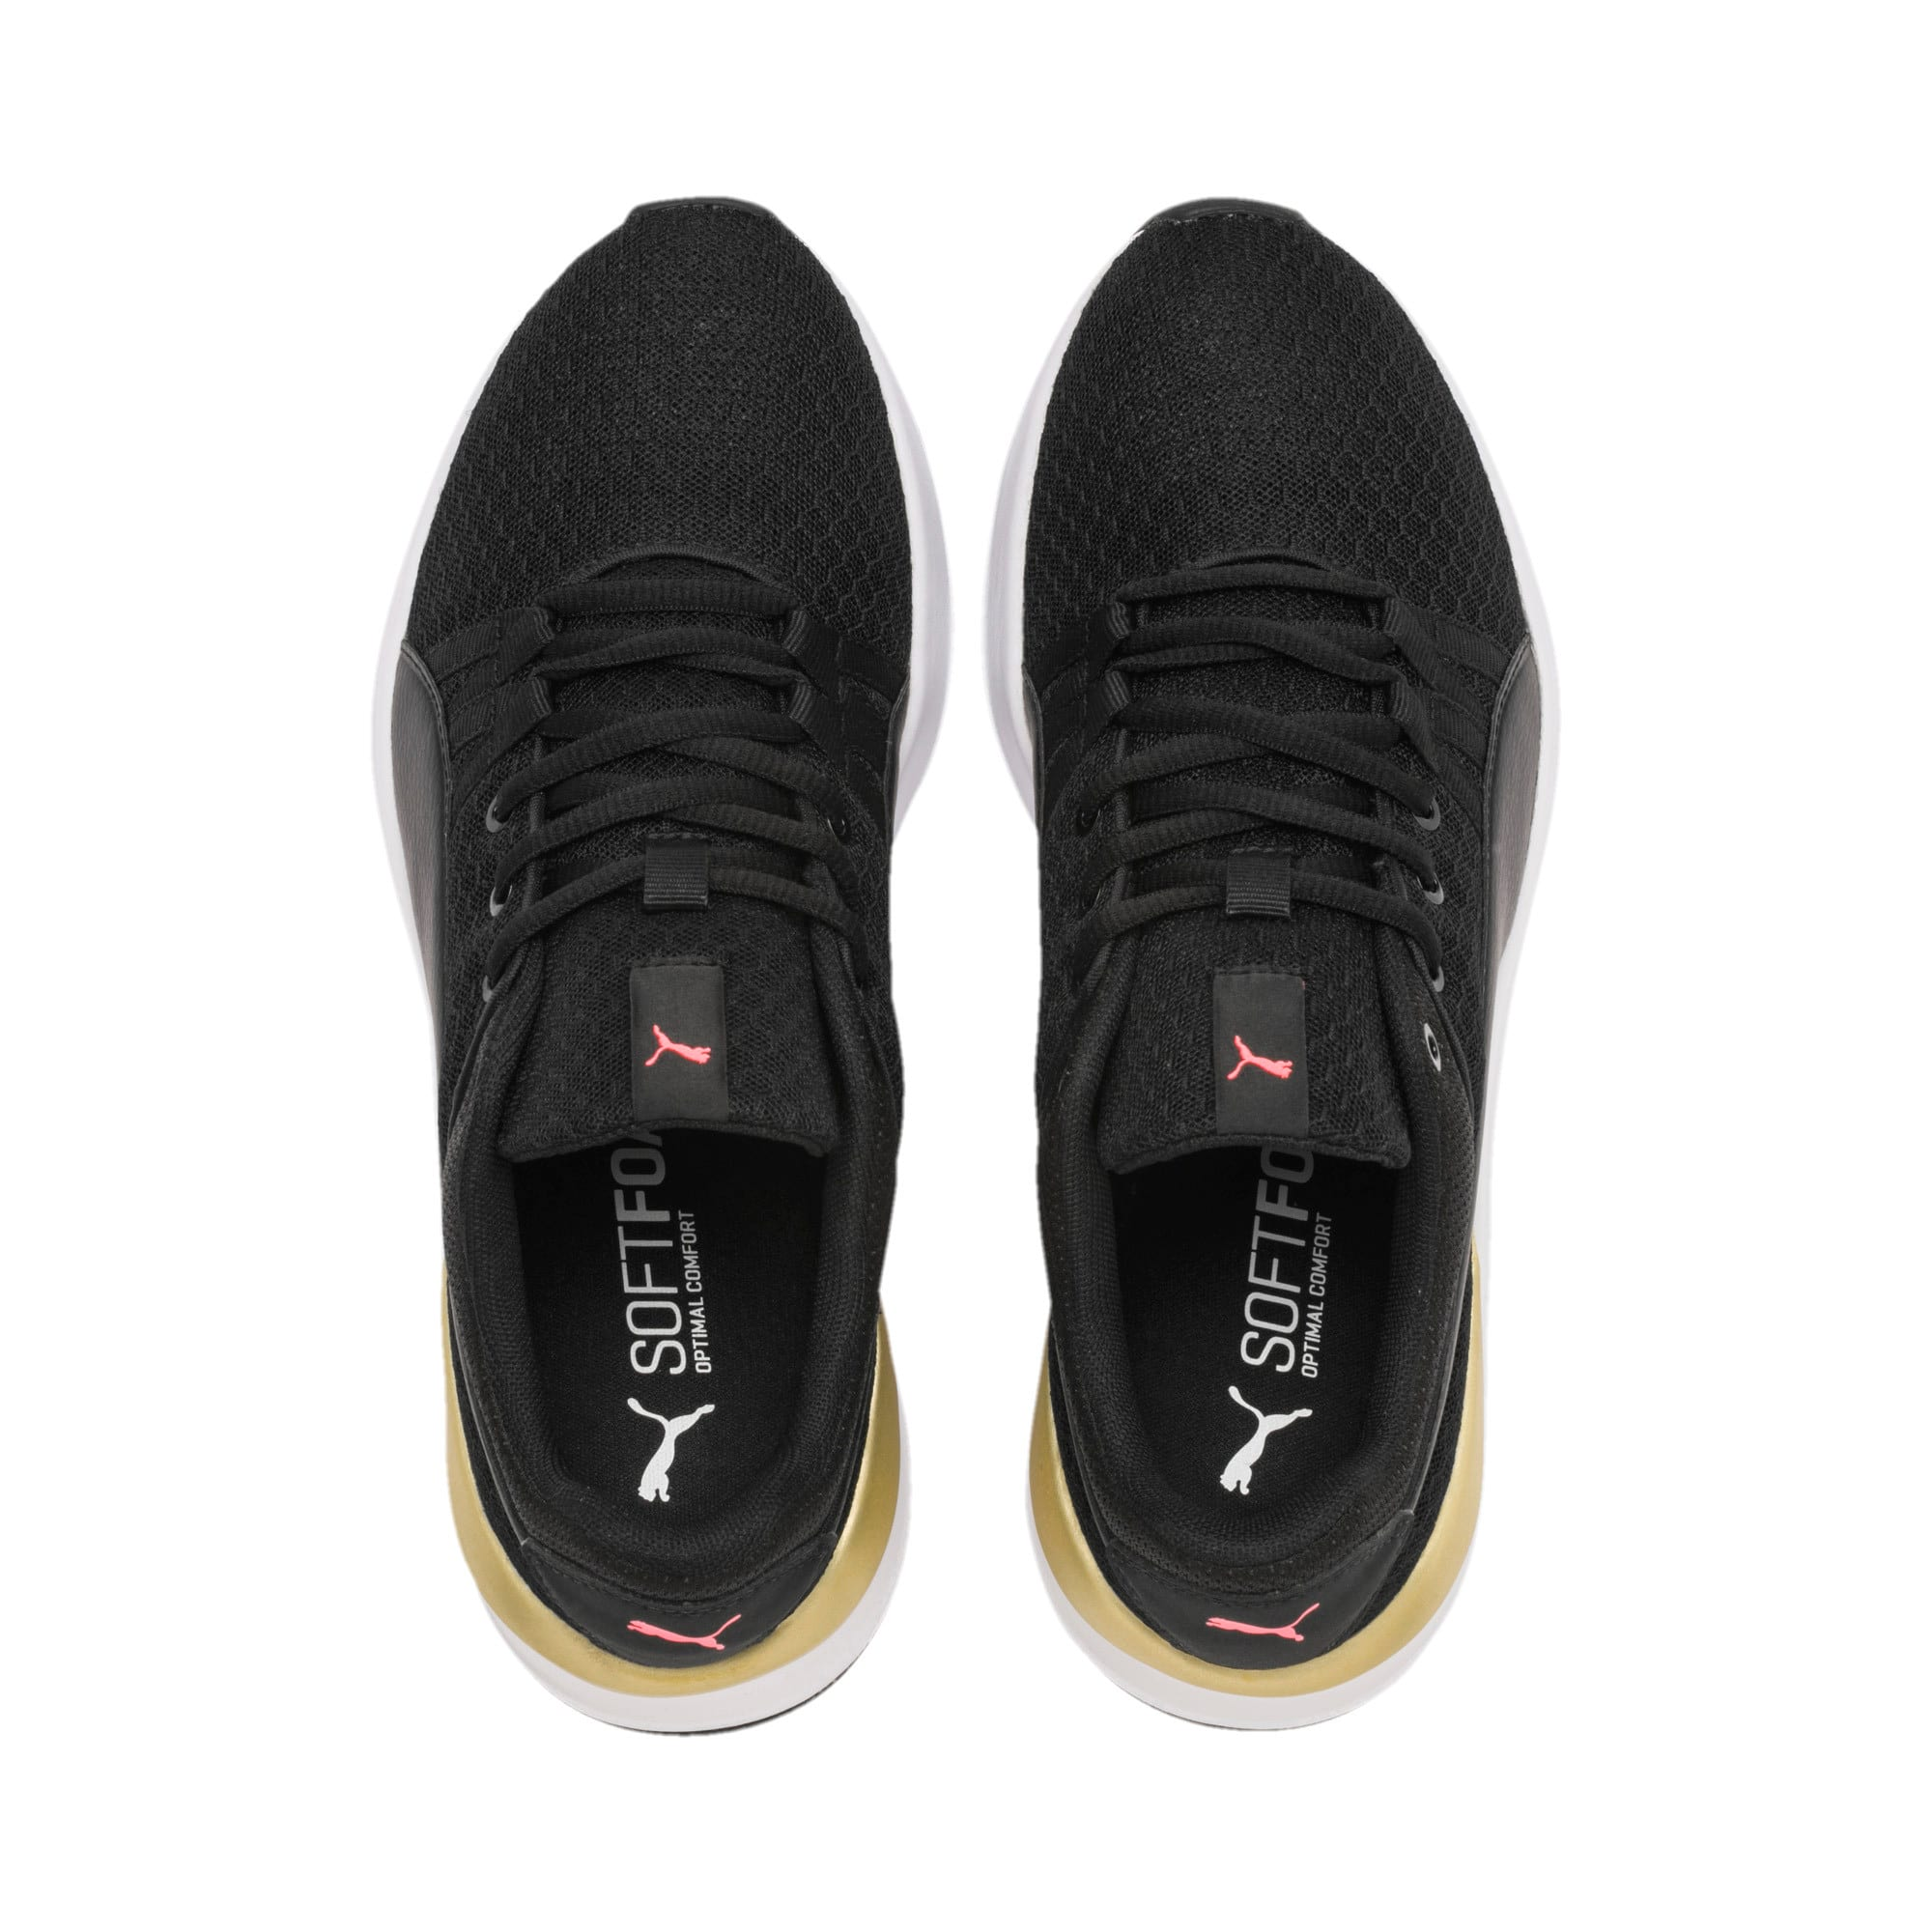 Thumbnail 7 of Adela Trainers, Puma Black-Puma Team Gold, medium